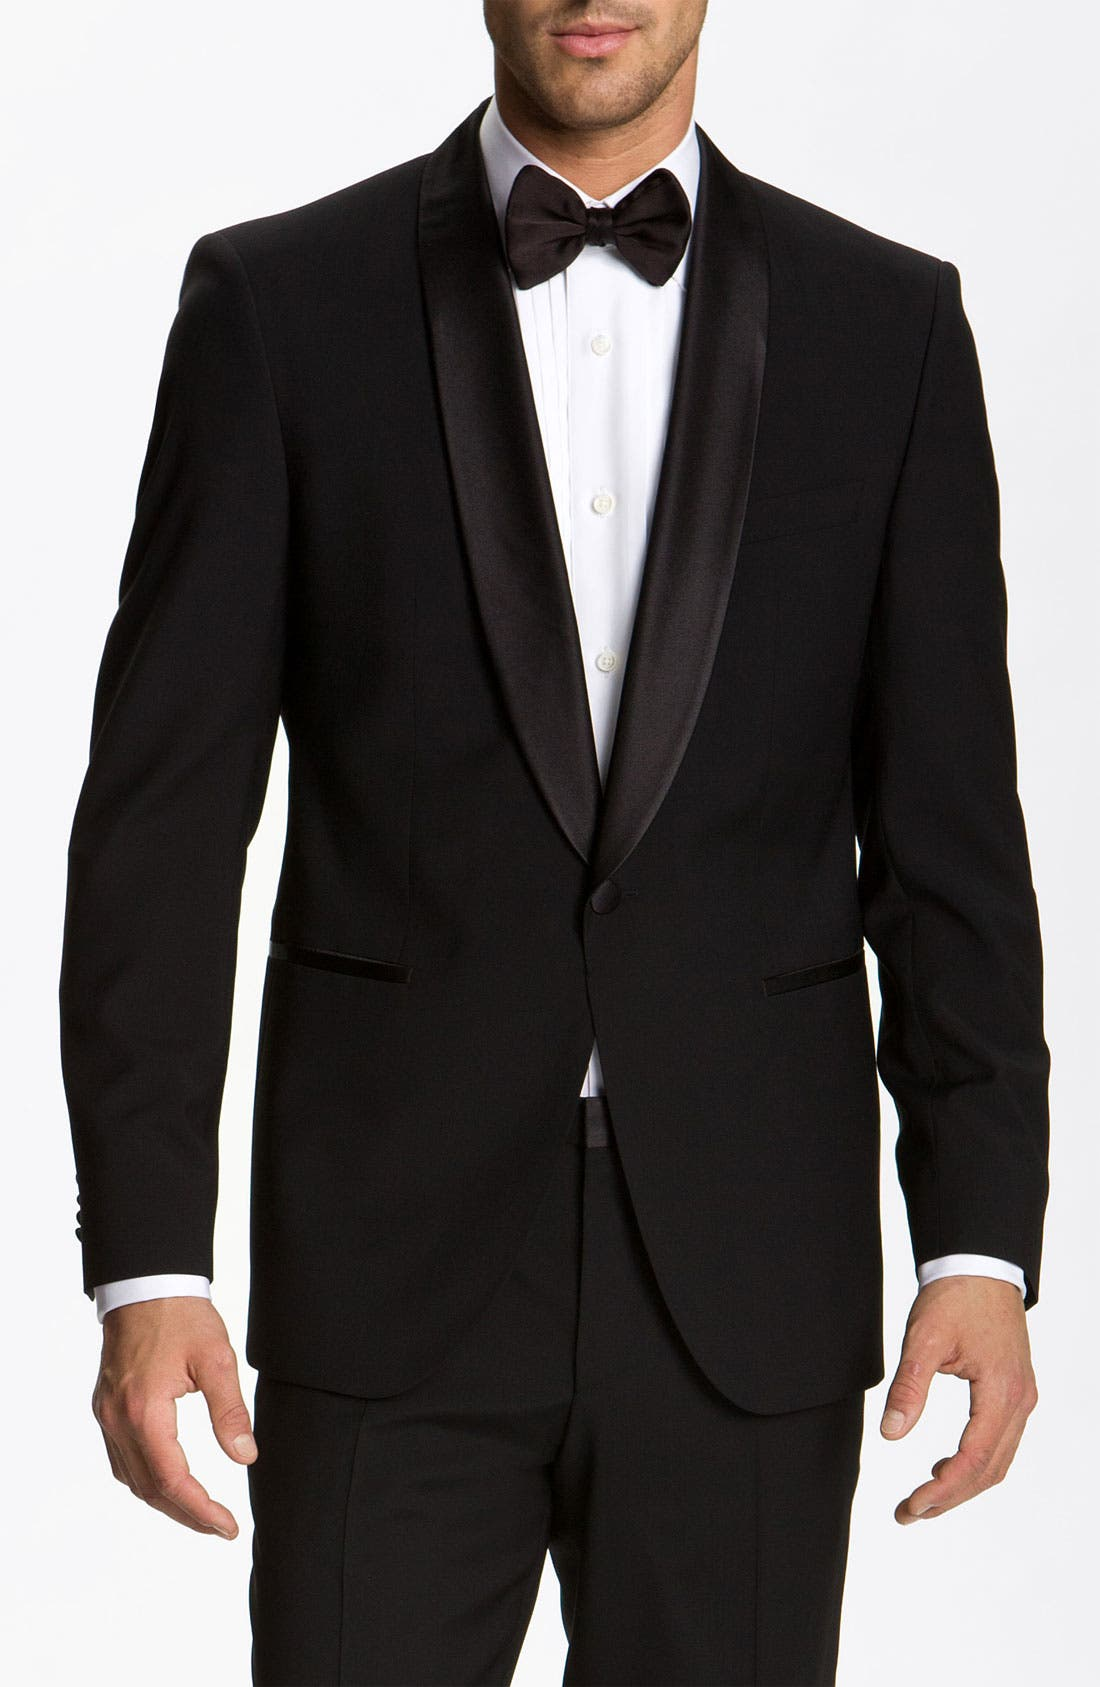 ZZDNUHUGO BOSS,                             BOSS 'Sky Gala' Shawl Lapel Tuxedo,                             Alternate thumbnail 5, color,                             001